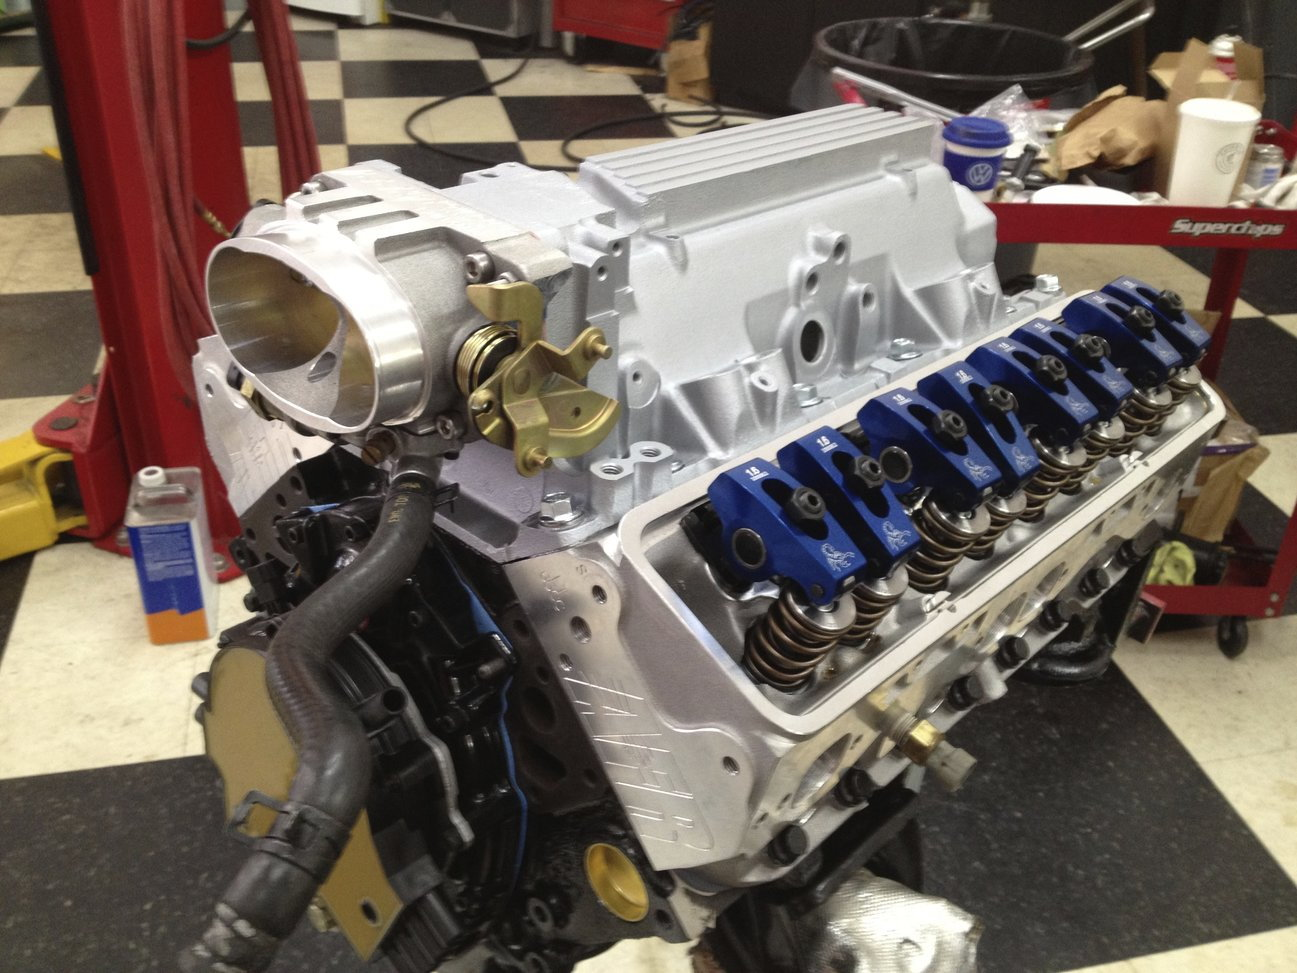 FS (For Sale) LT1 383 Turn Key 700+HP - CorvetteForum